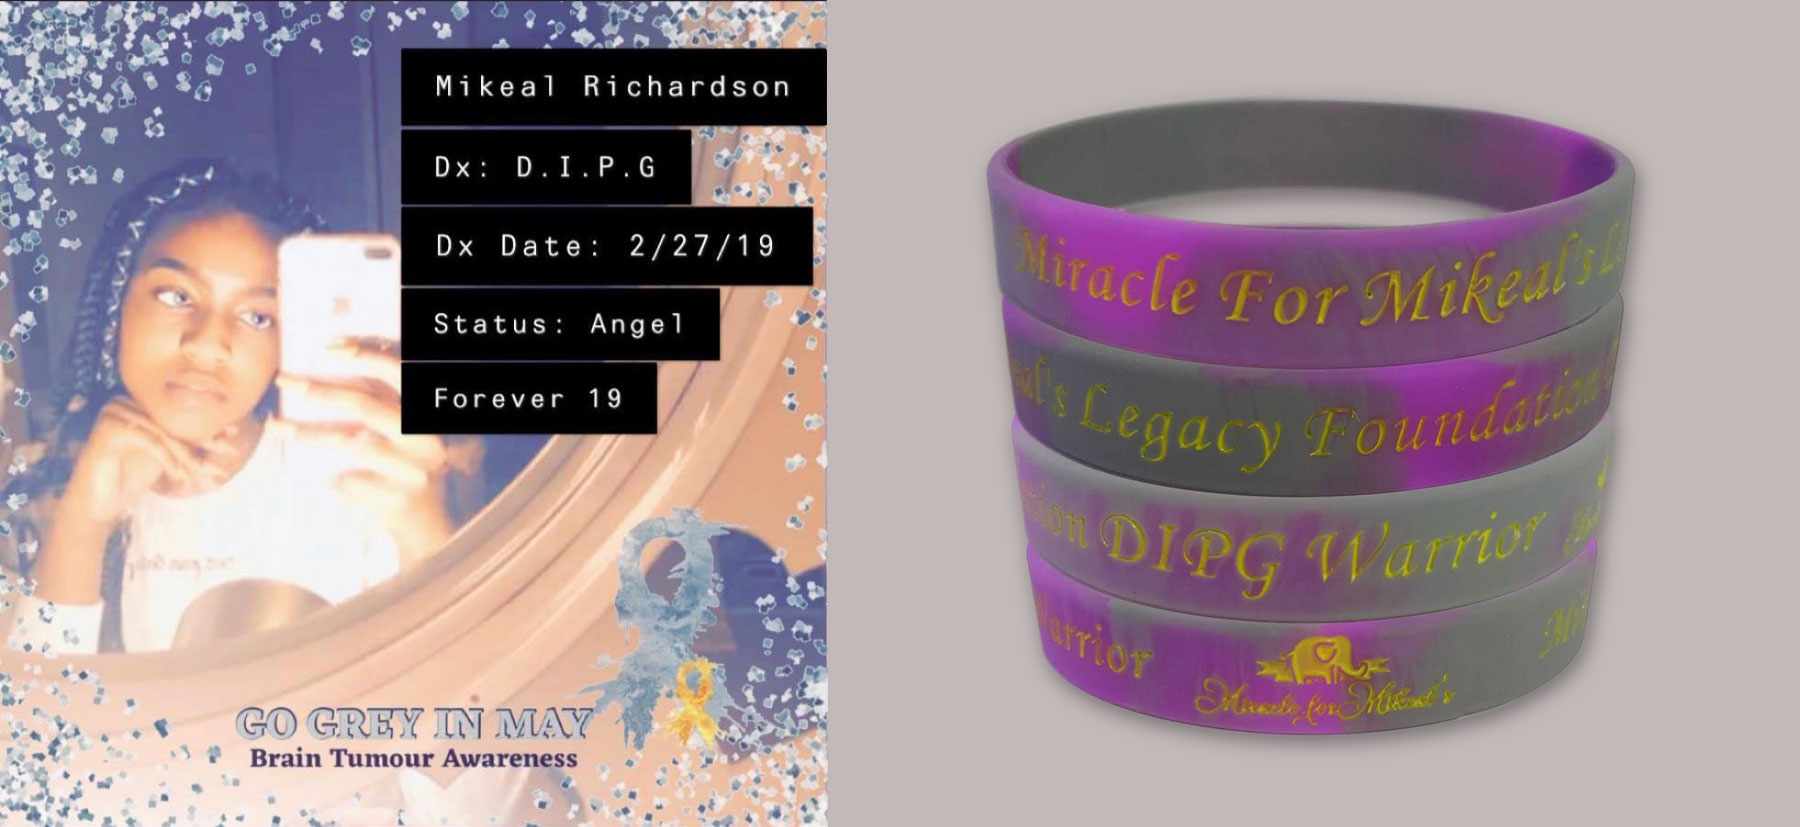 Miracle For Mikeal's Legacy Foundation Wristbands